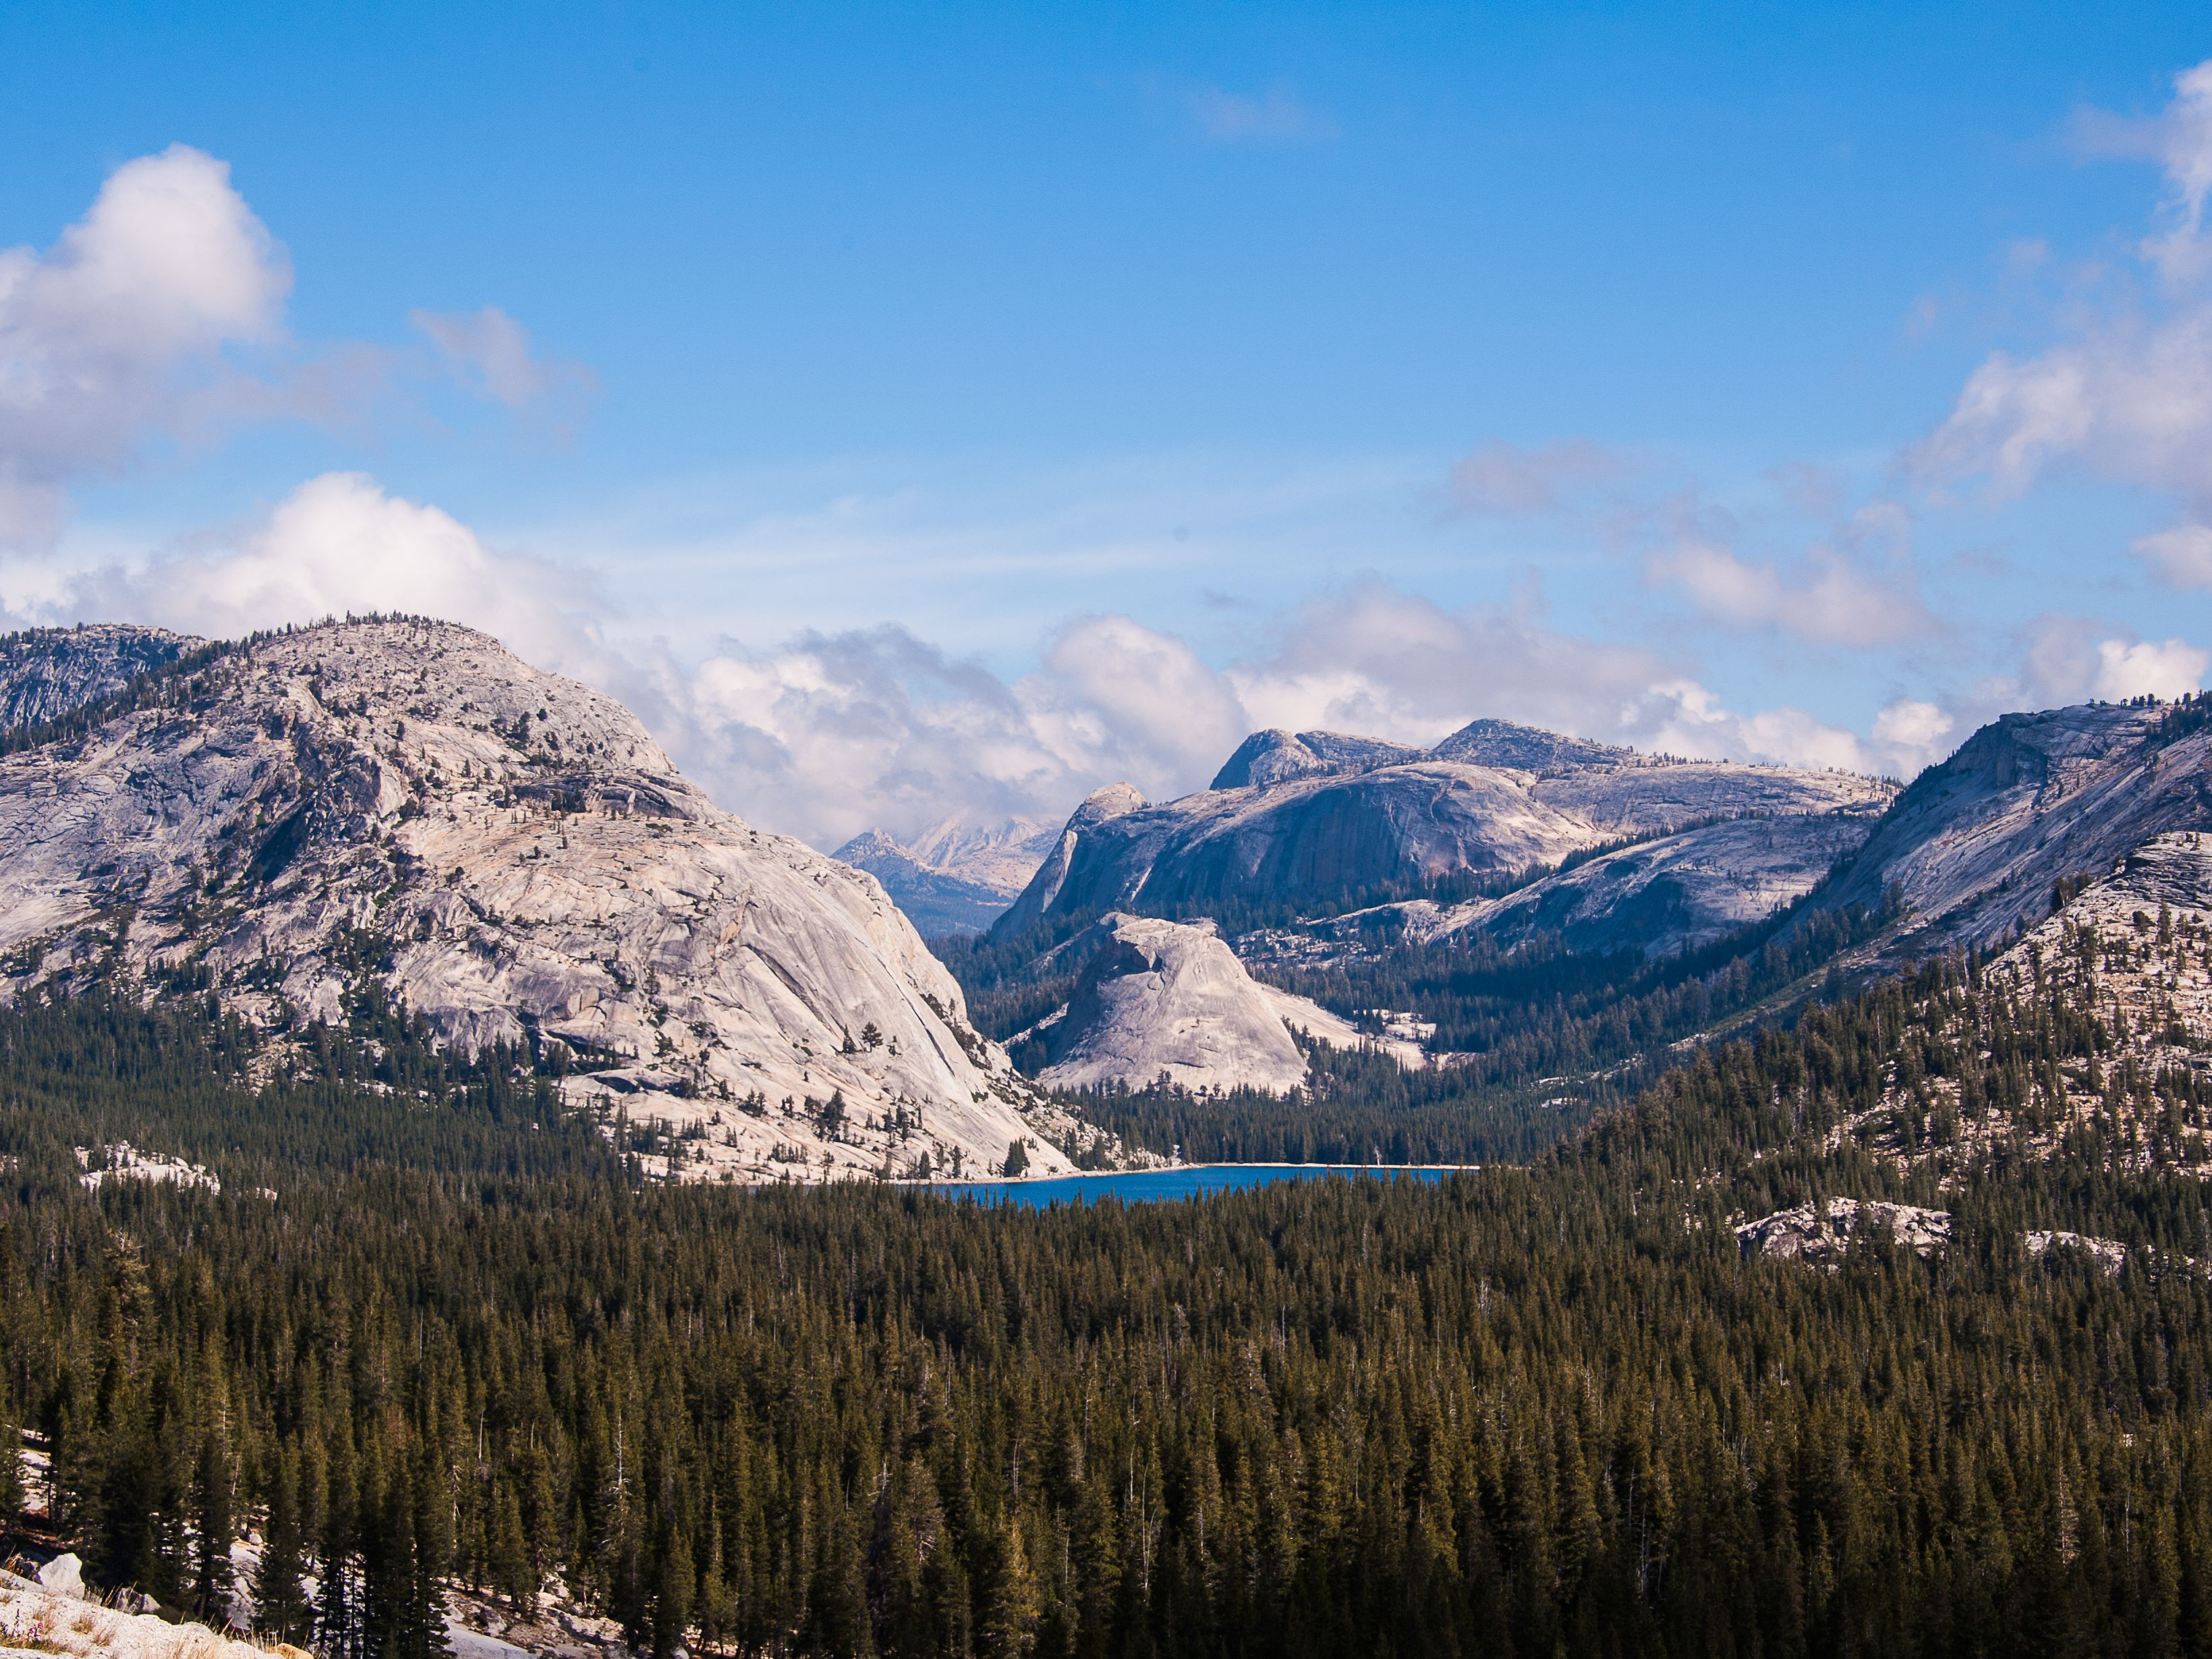 Tioga Pass in Yosemite